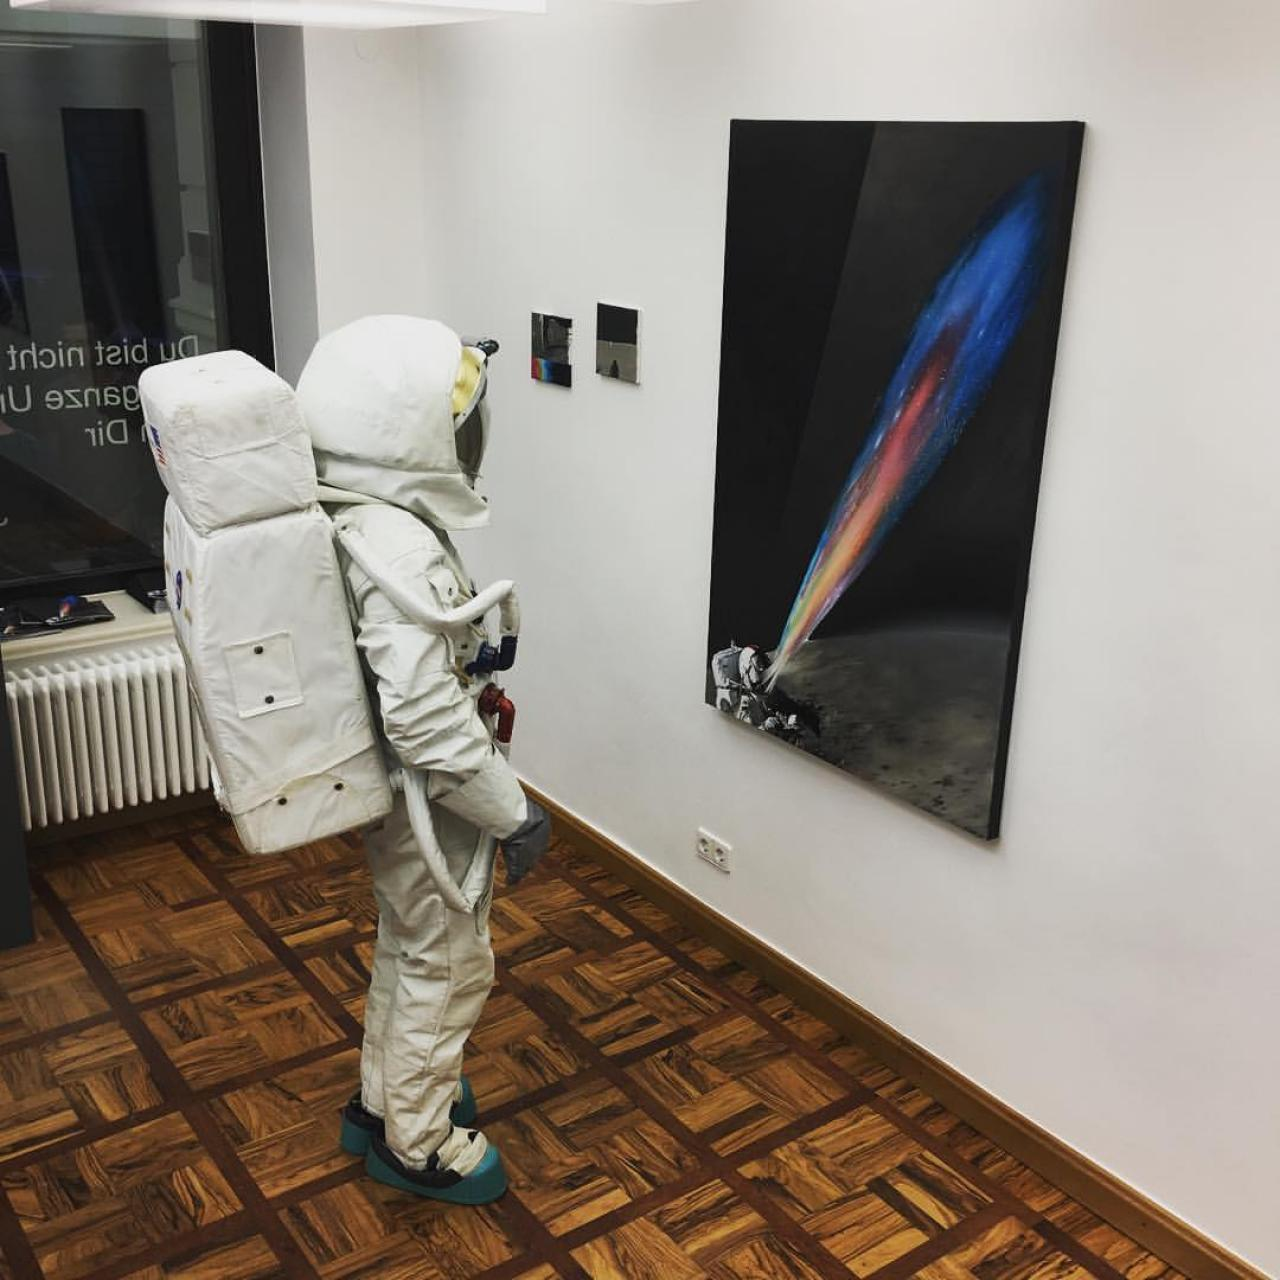 performance in front of paintings, lalina gallery, leipzig 2017